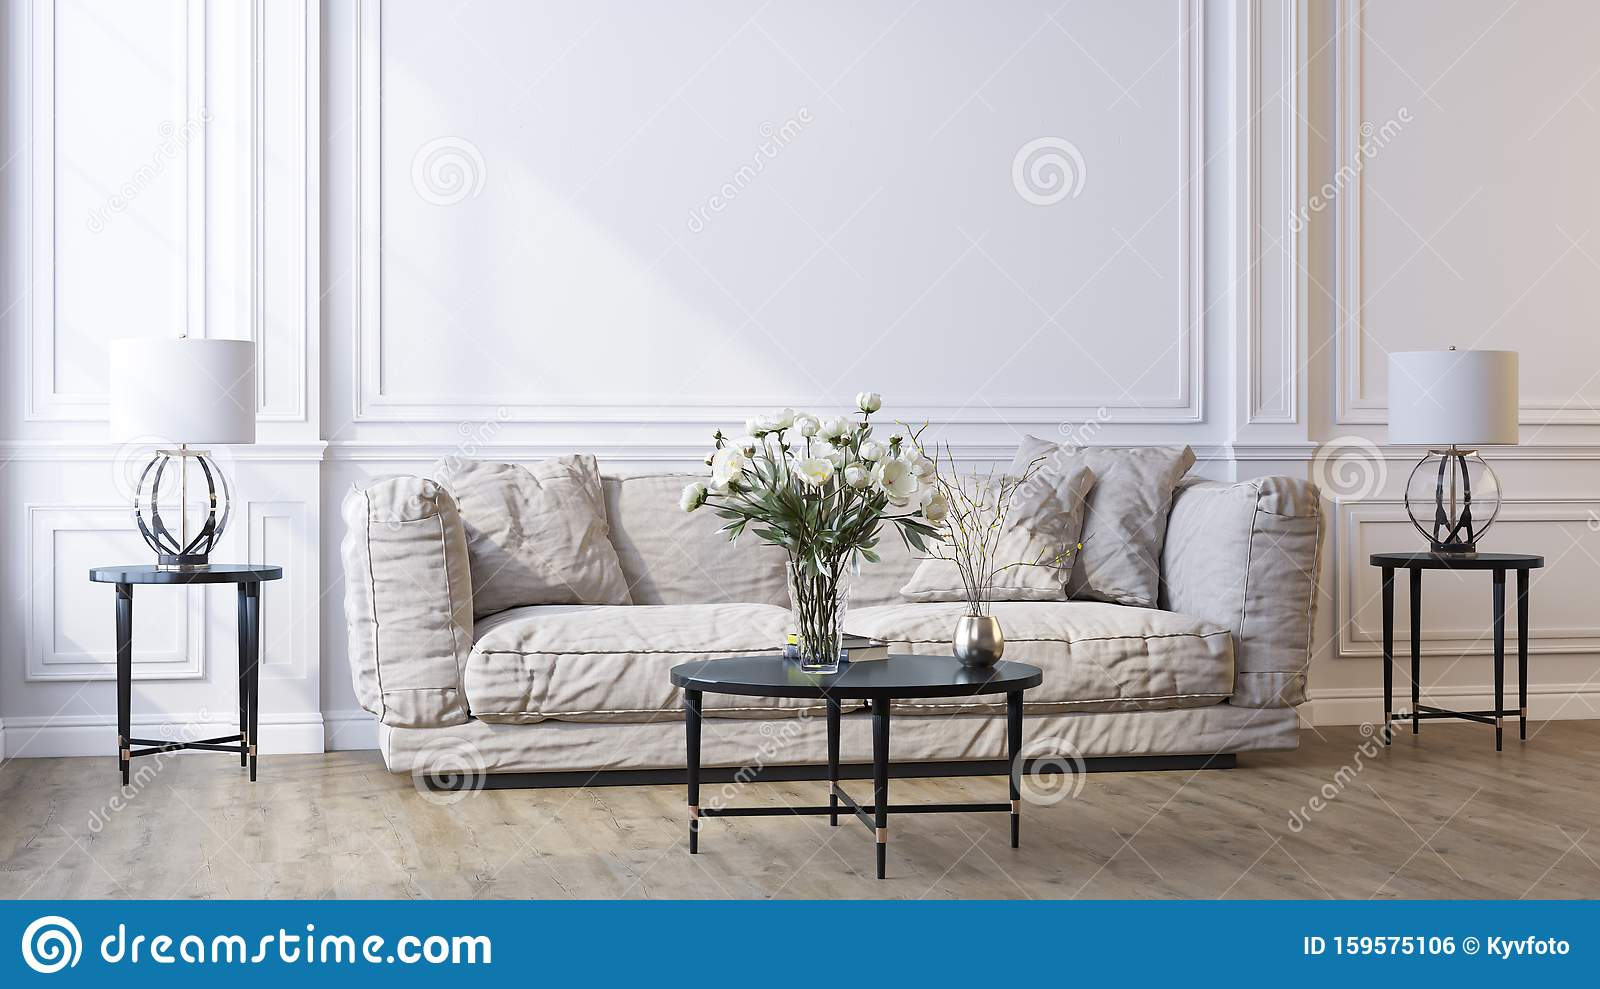 Decorative Background For Home Office And Hotel Modern Interior Design Stock Illustration Illustration Of Interior Neutral 159575106